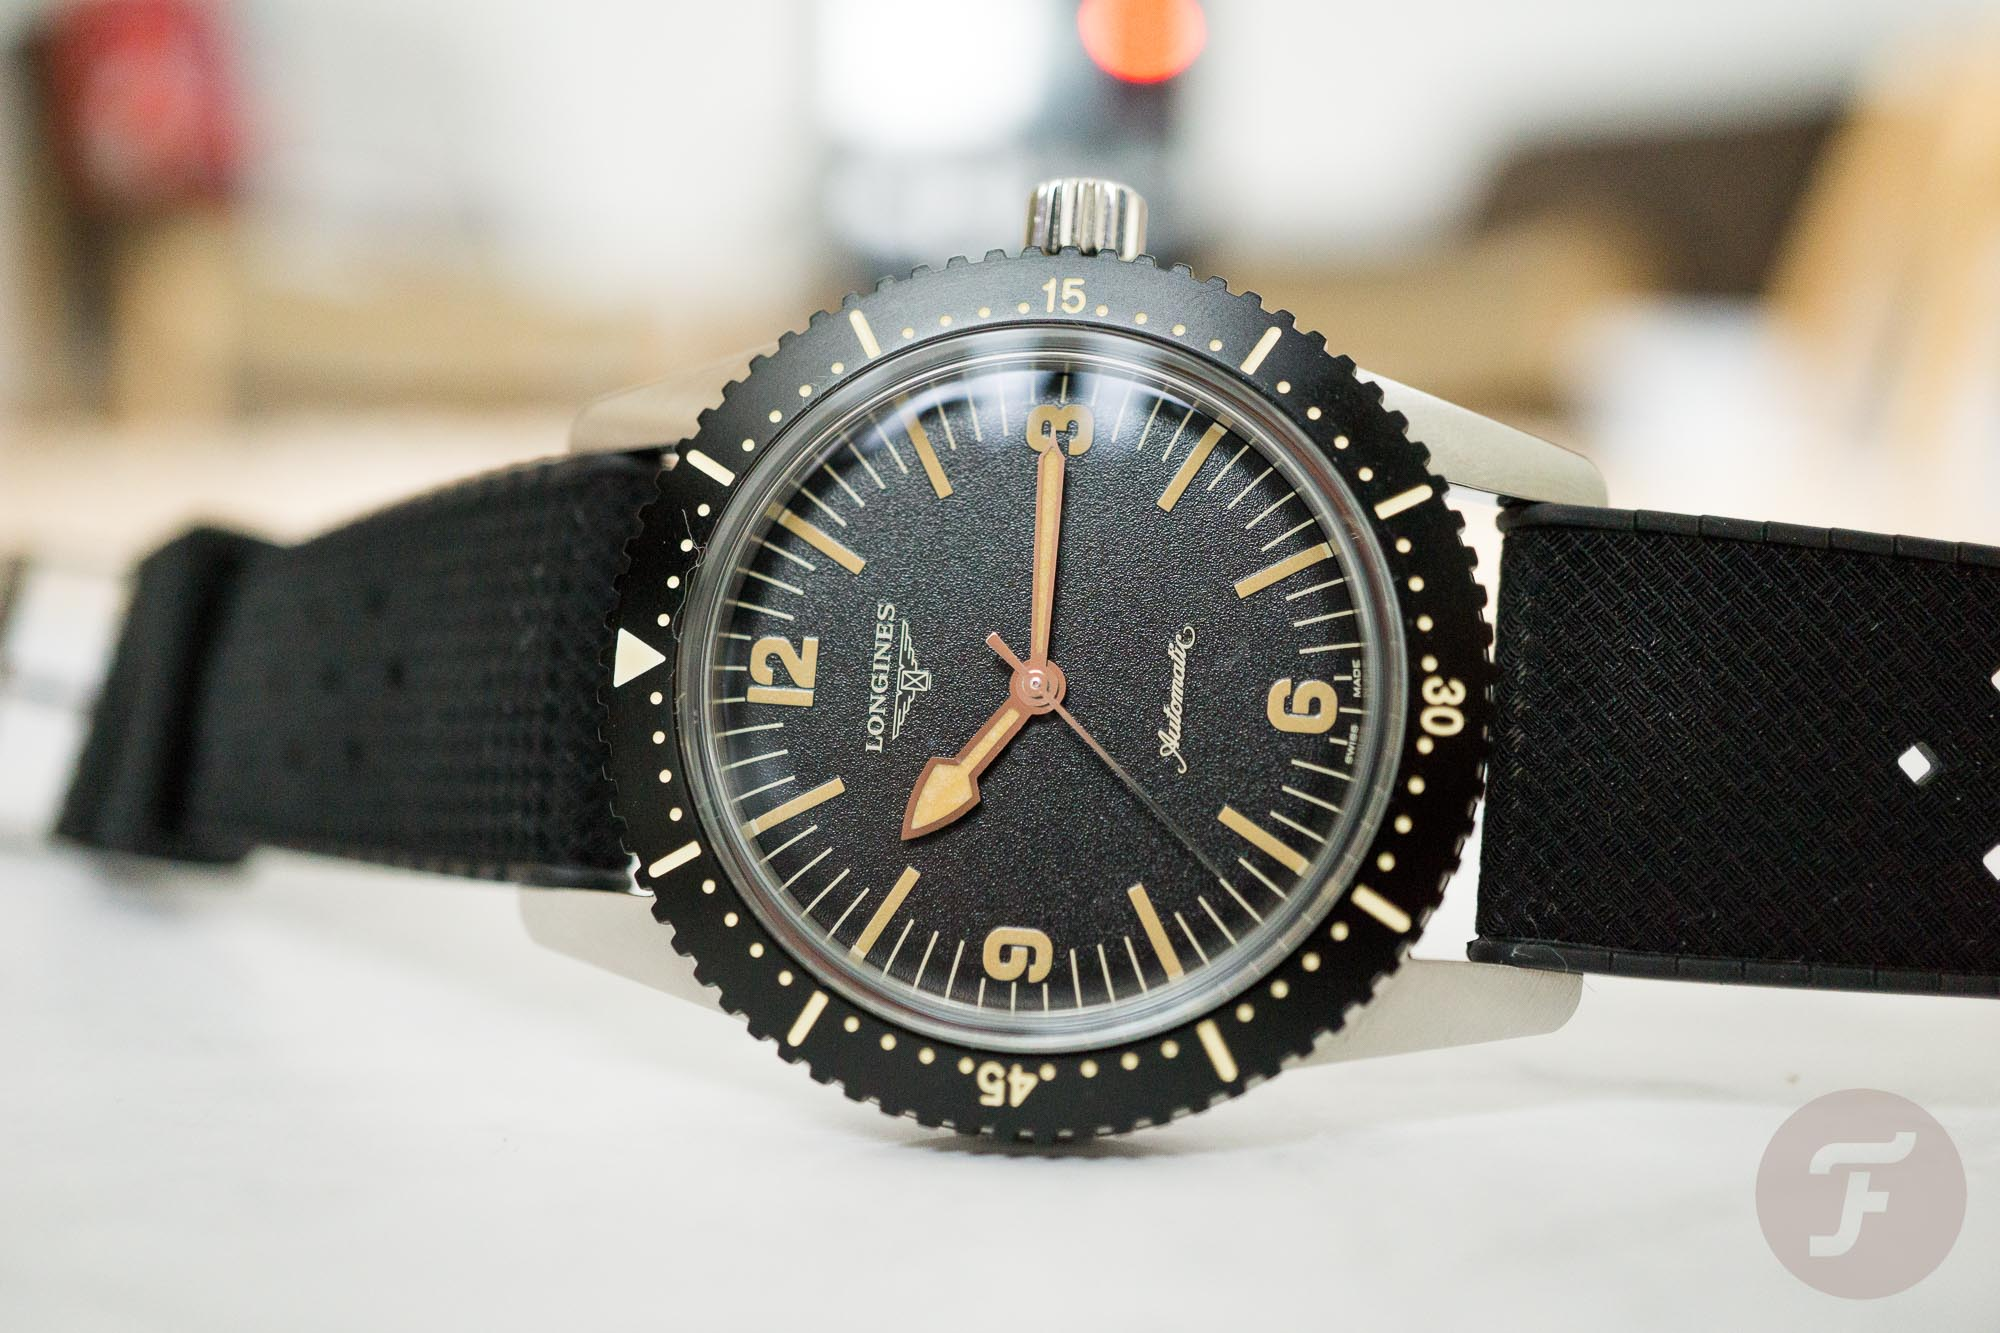 Longines Skin Diver - Hands On Review Of A Future Classic